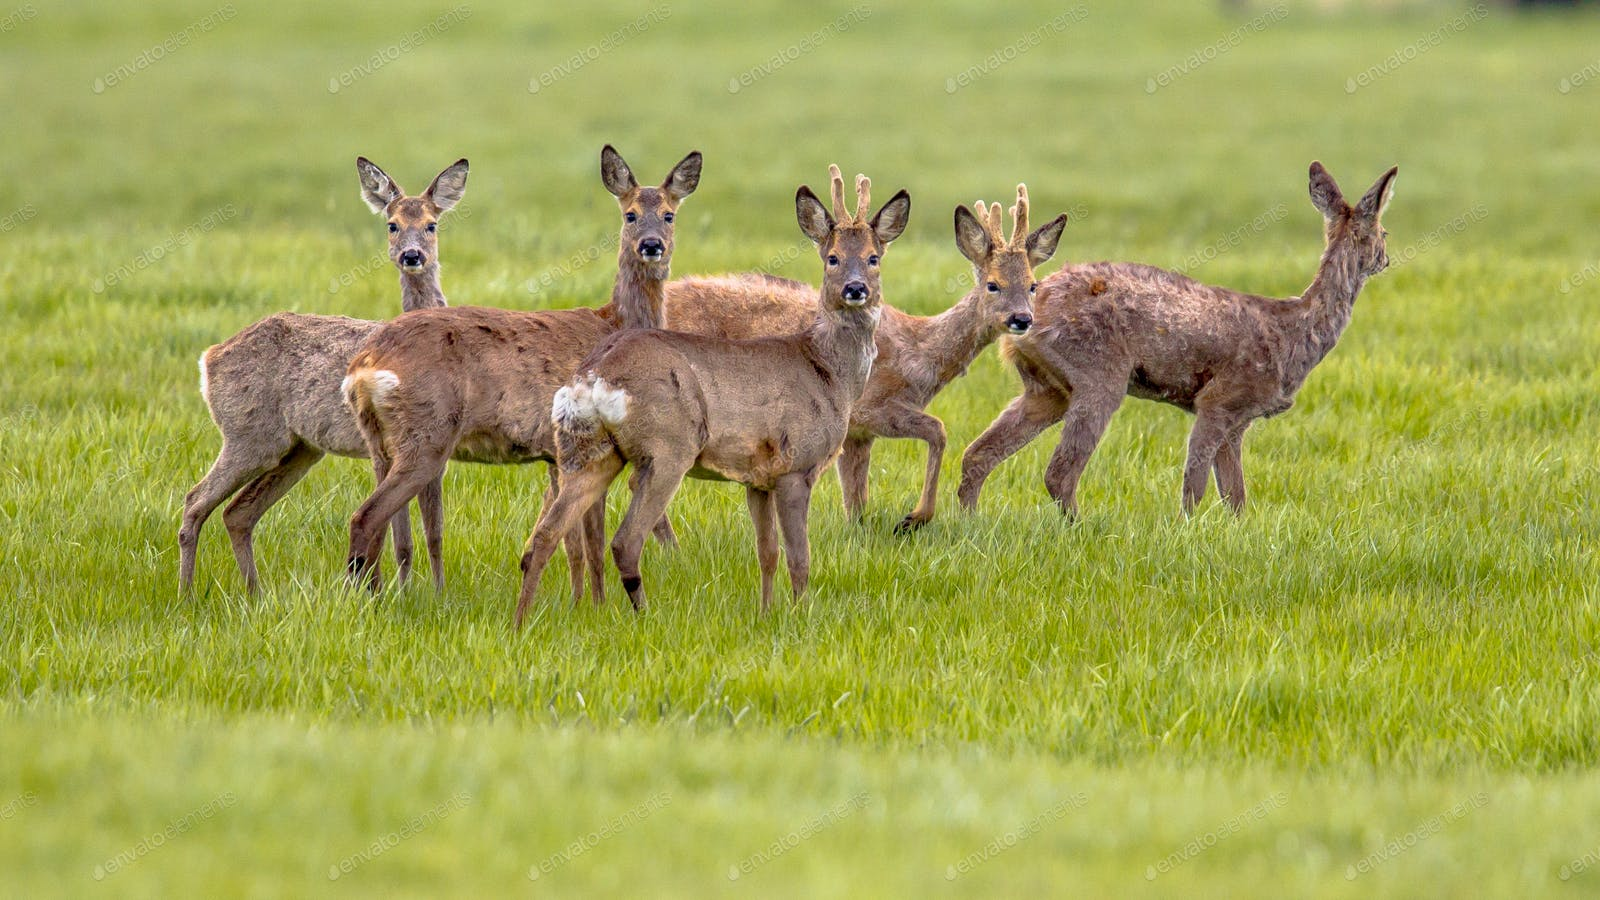 Mixed Group Of Roe Deer In Grassland Environment Photo By Creativenature Nl On Envato Elements